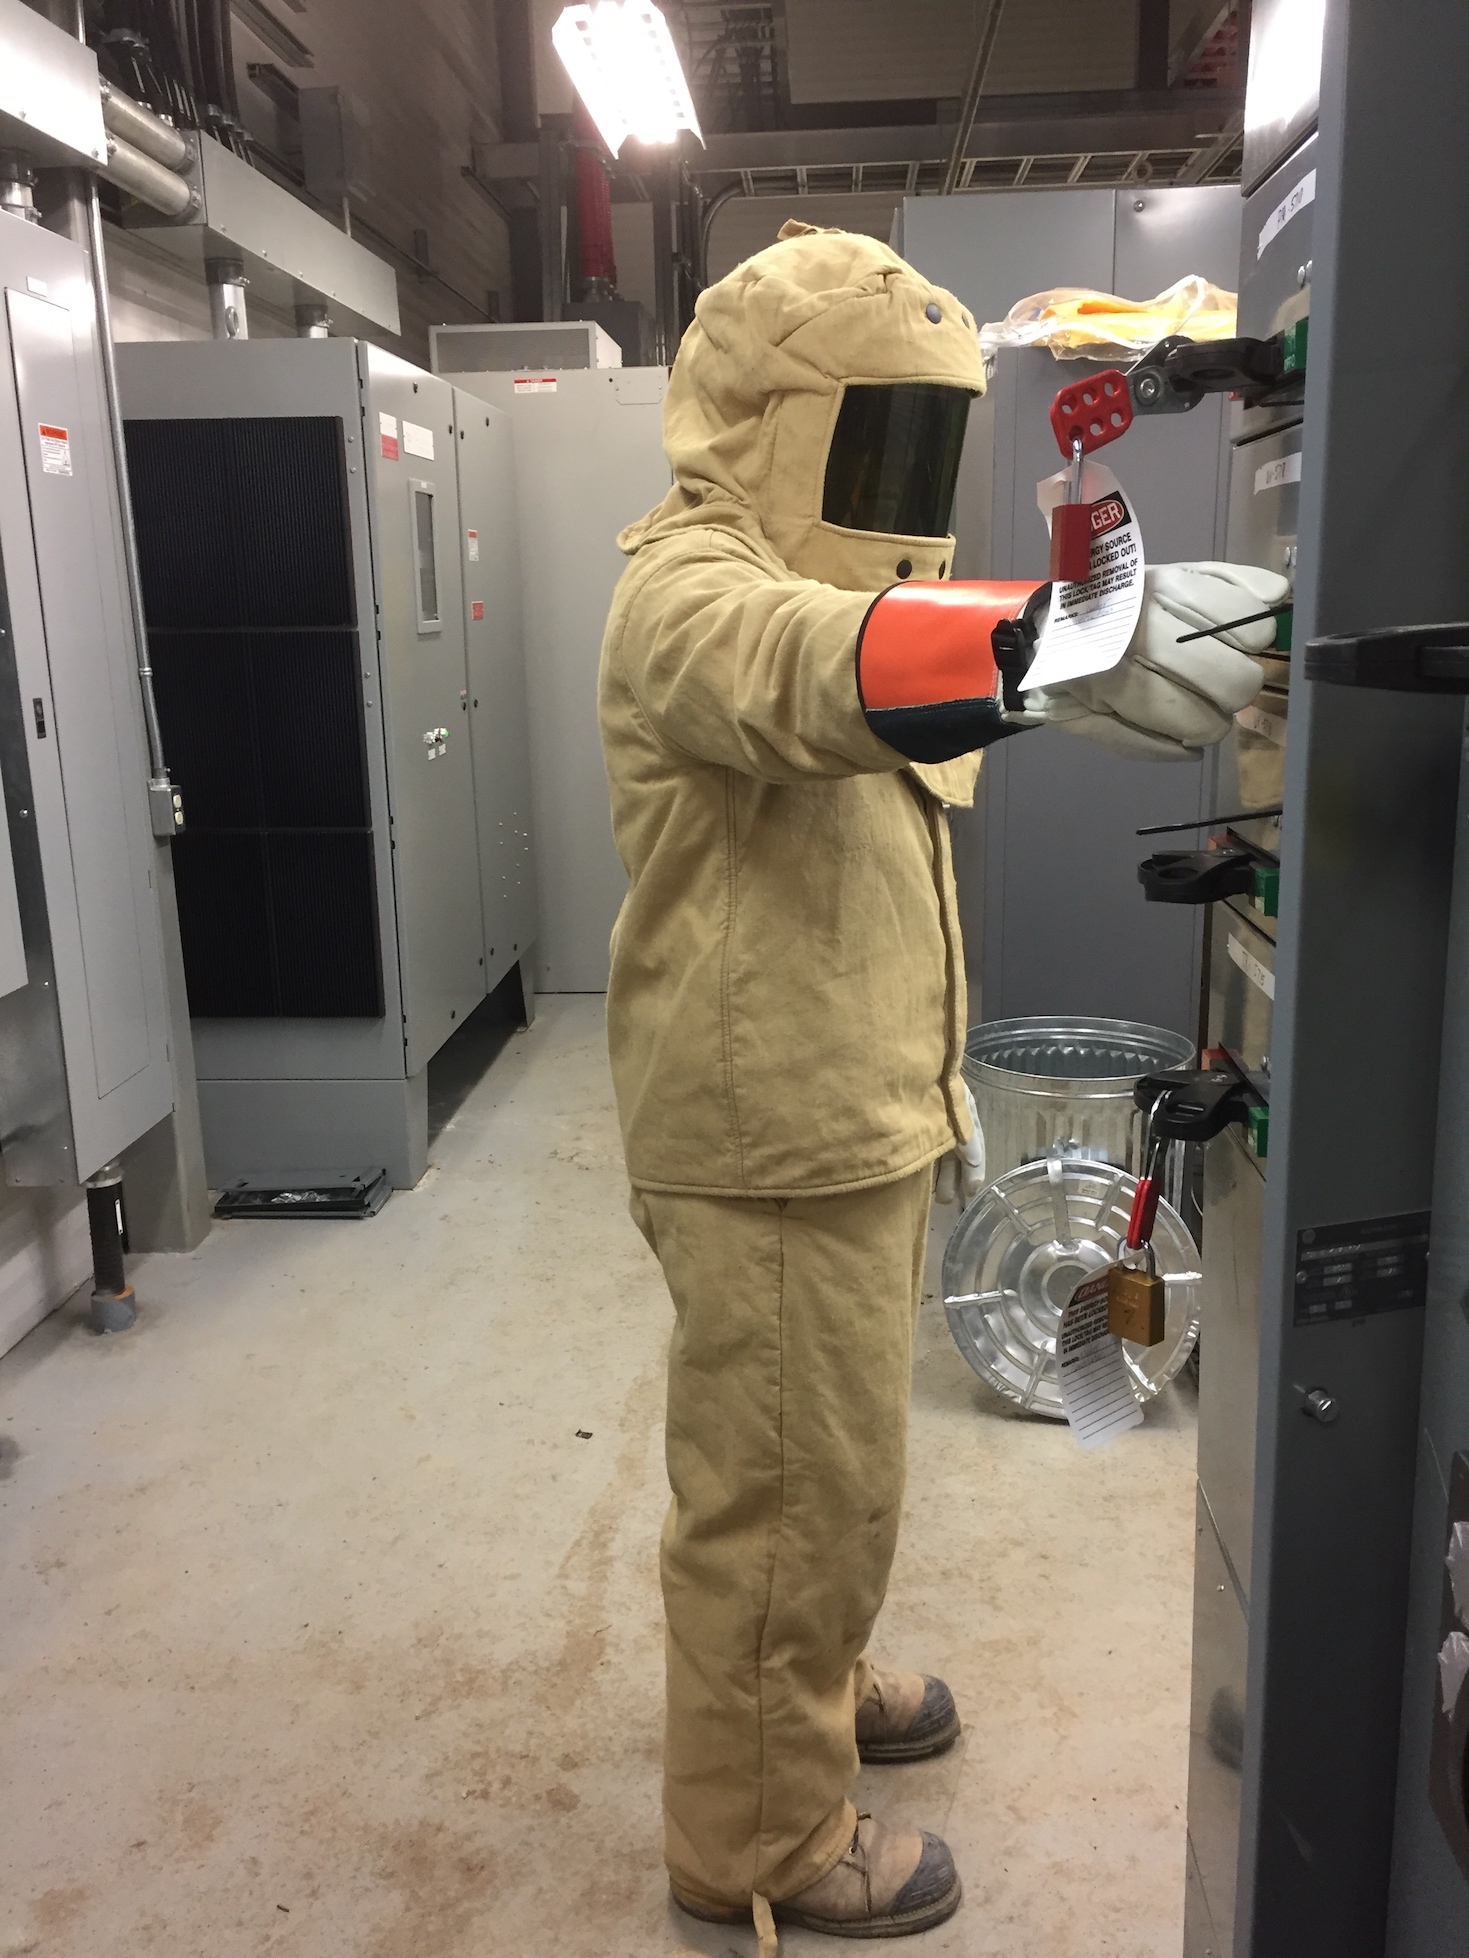 Arc Flash Protection Tip: Always stand to the side of a circuit breaker when energizing or de-energizing it